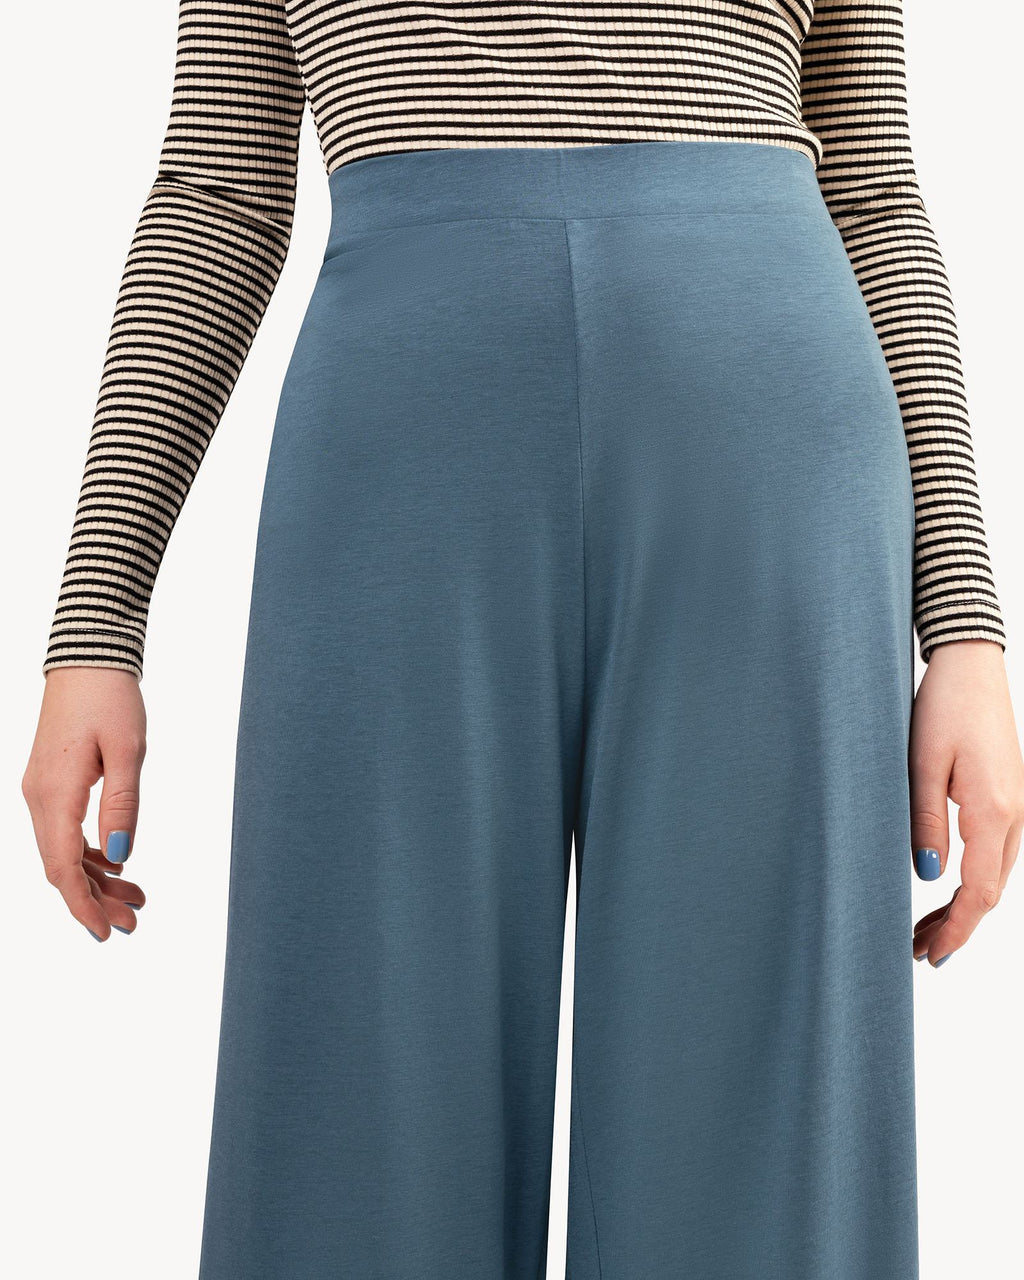 variant_1 | EN Pants Summer Blue Wide Leg Women Madness | DE Hose Sommer Blau Wide Leg Damen Madness